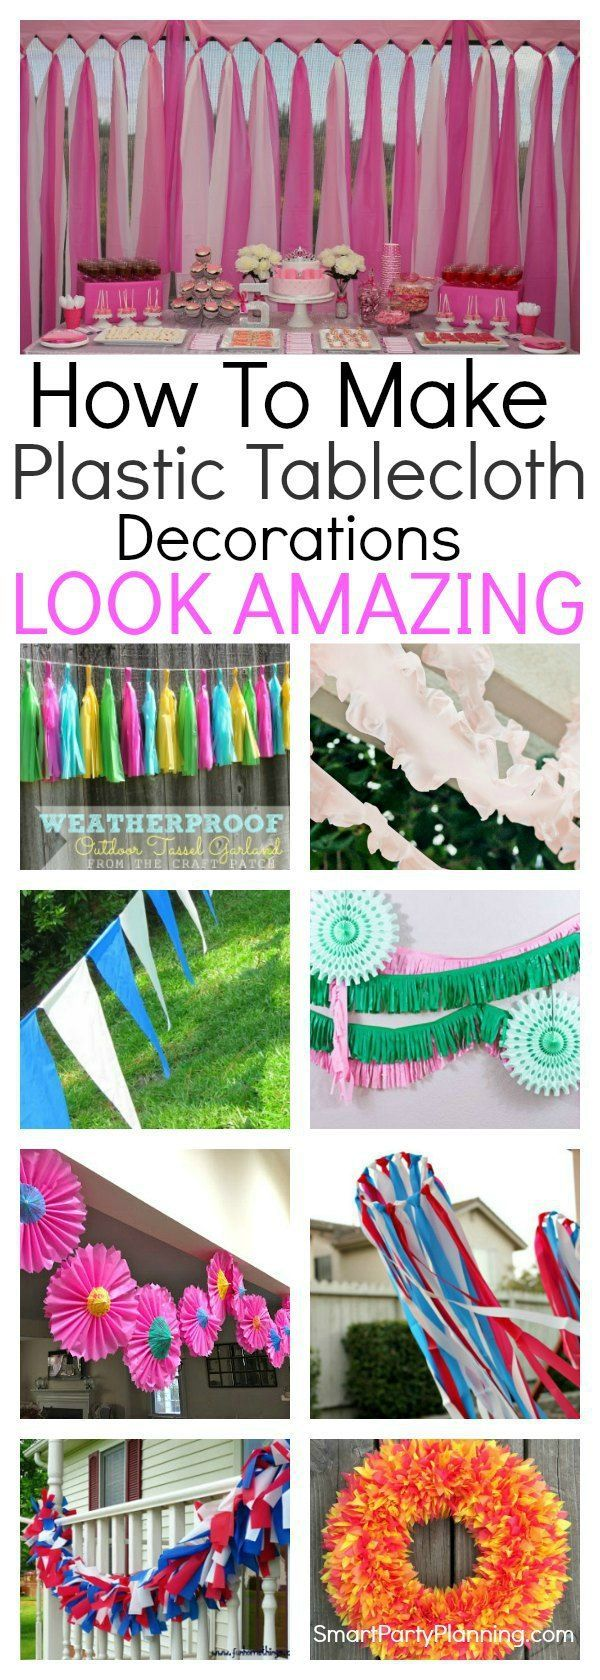 These 12 easy plastic tablecloth decorations will make decorating for parties a breeze. With all the items easily purchased from dollar stores, they are not only effective and easy to make, but really cheap too. Whether you want to make a photo booth backdrop, streamers or simply jazz up table runners, all the party ideas are here for you. Party decoration could not be easier. #Plastictableclothdecorations #DIY #Ideas